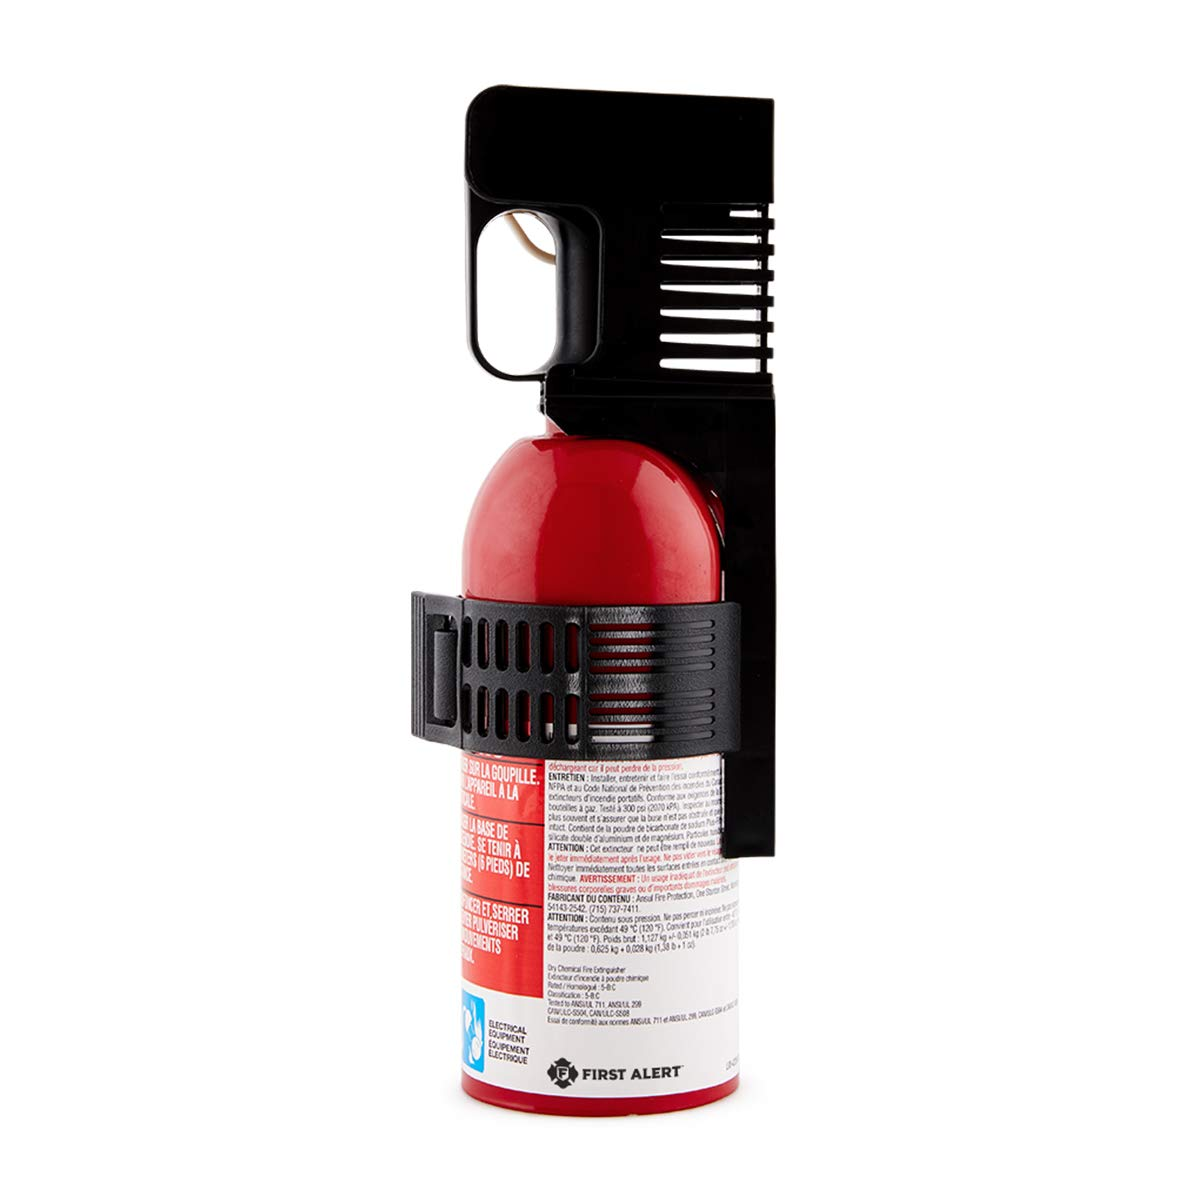 First Alert Fire Extinguisher | Car FireExtinguisher, Red, AUTO5 by First Alert